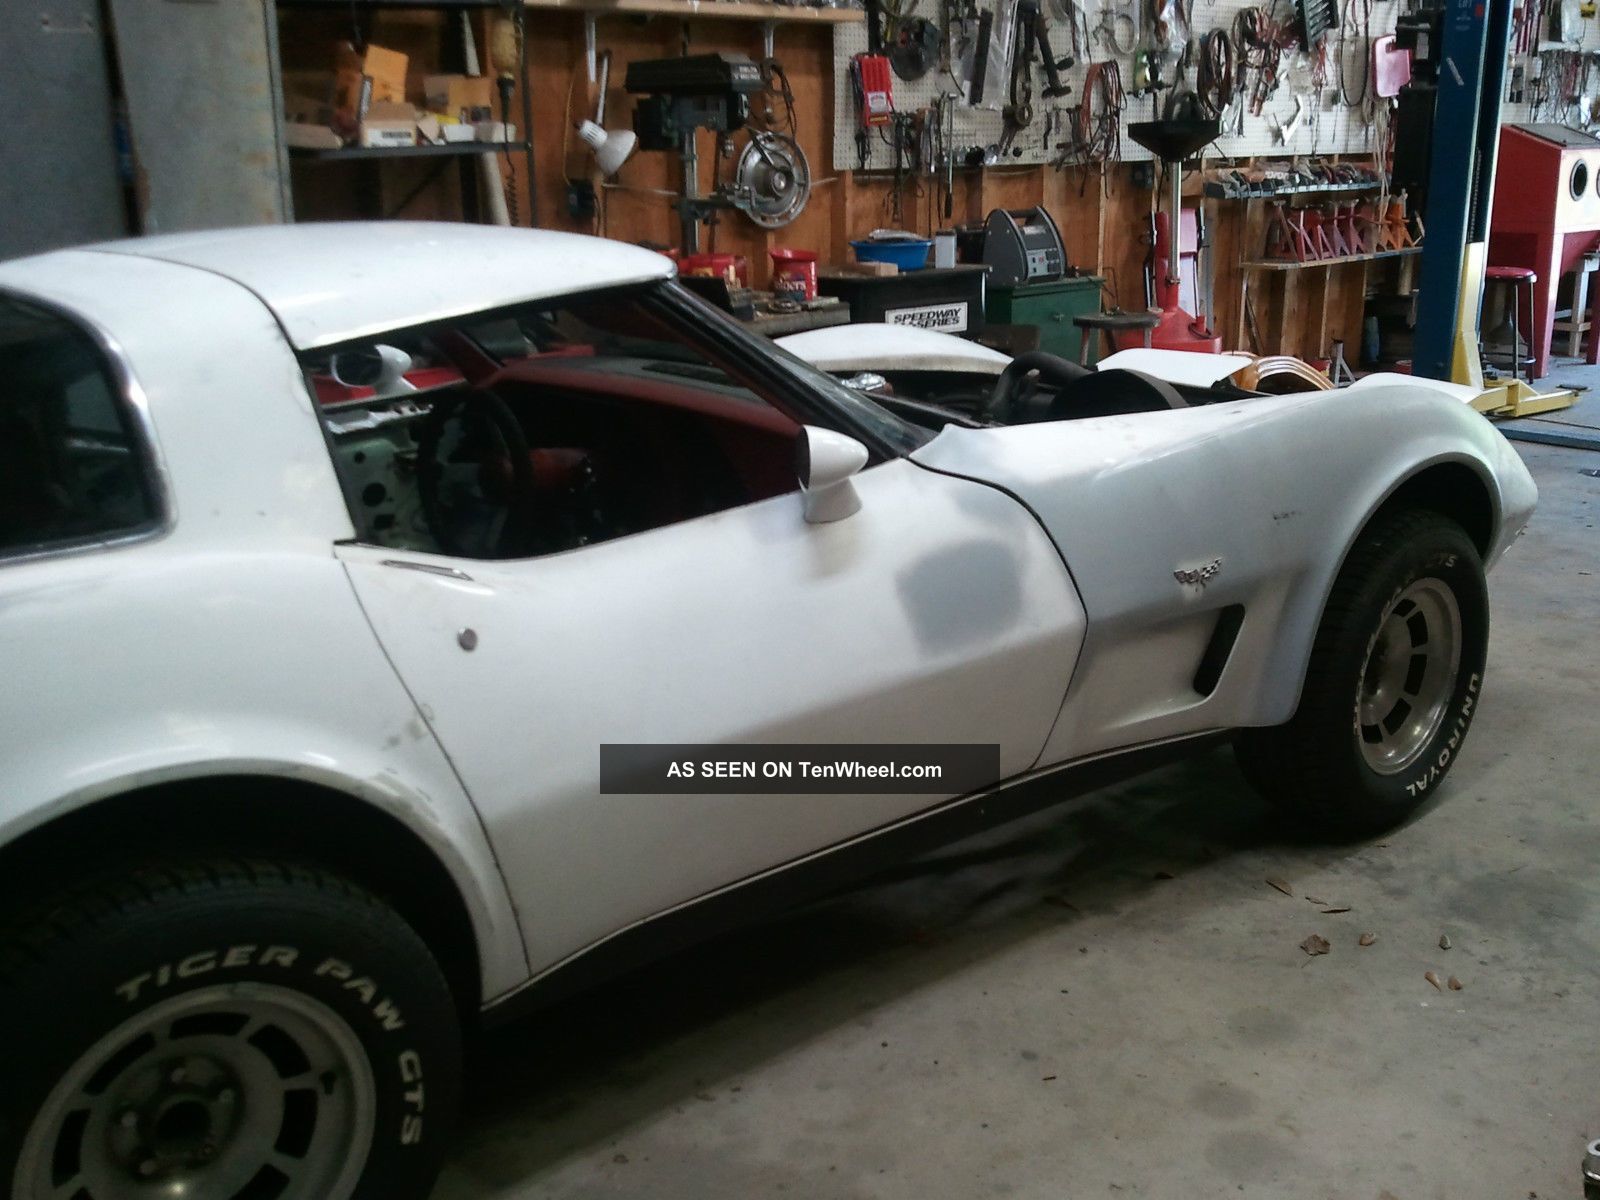 corvette project cars 56 corvette convertible project cars from $1,124 find the best deals for used cars.